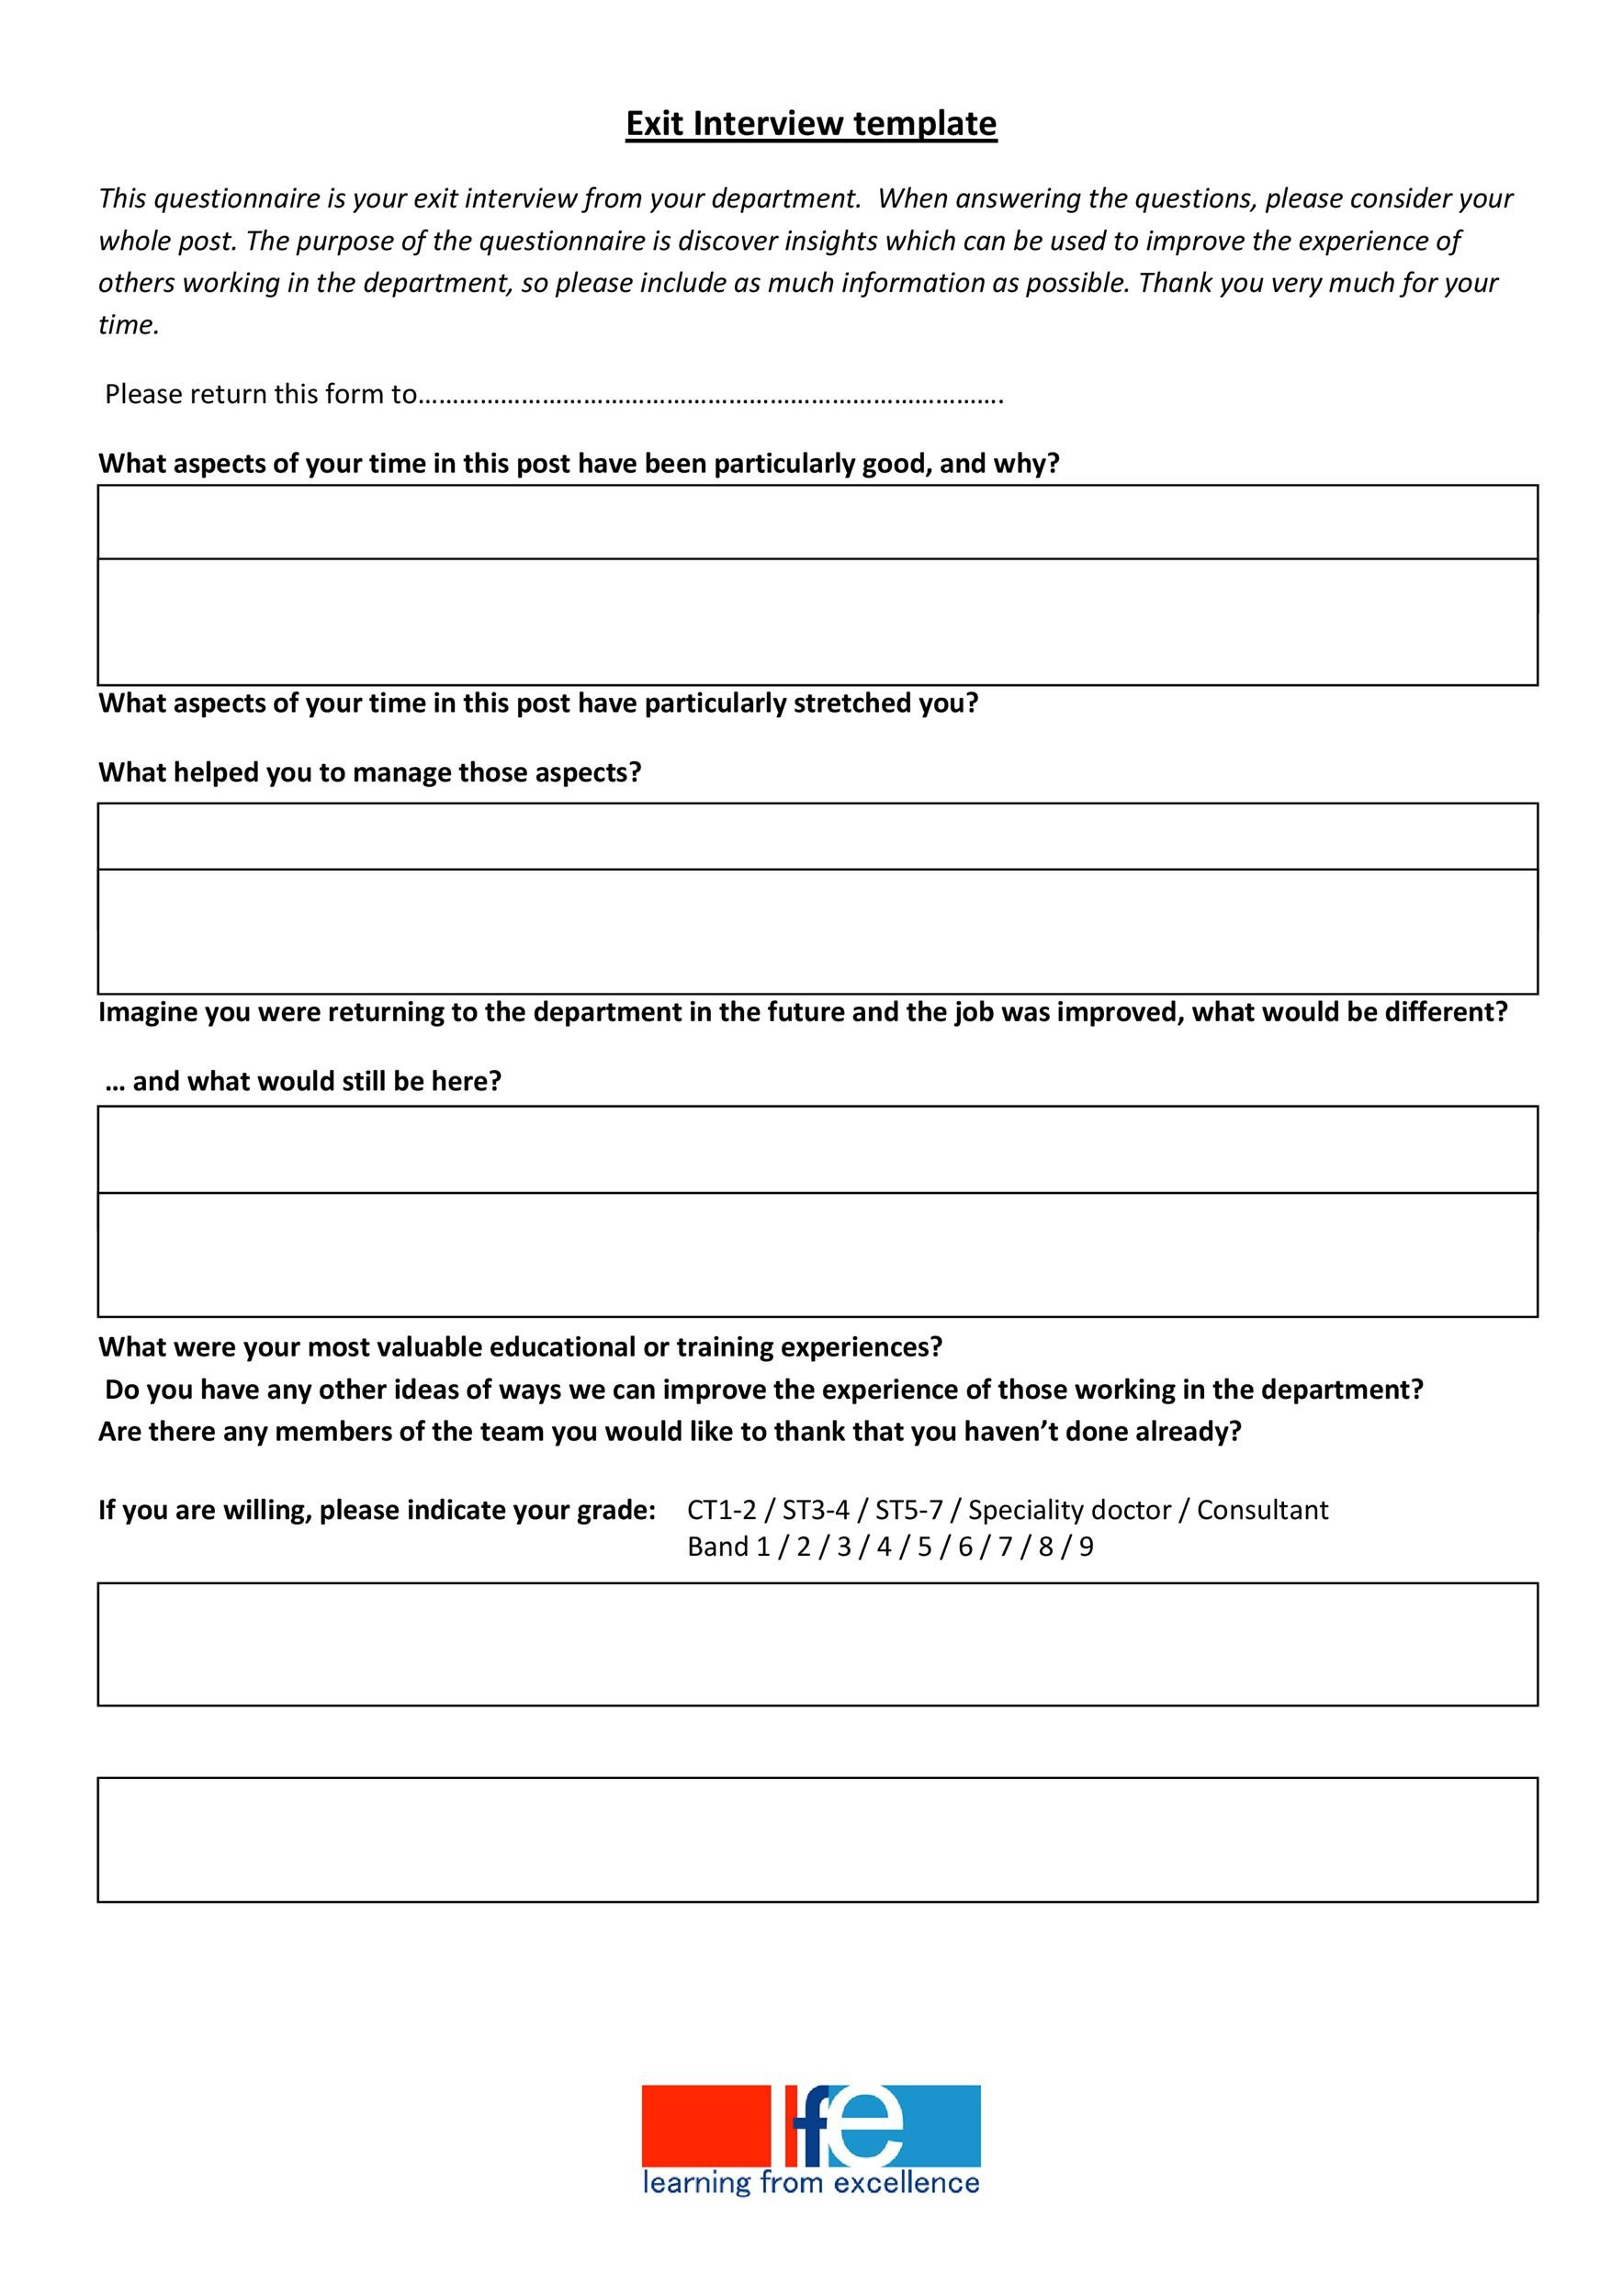 40 Best Exit Interview Templates Amp Forms Templatelab